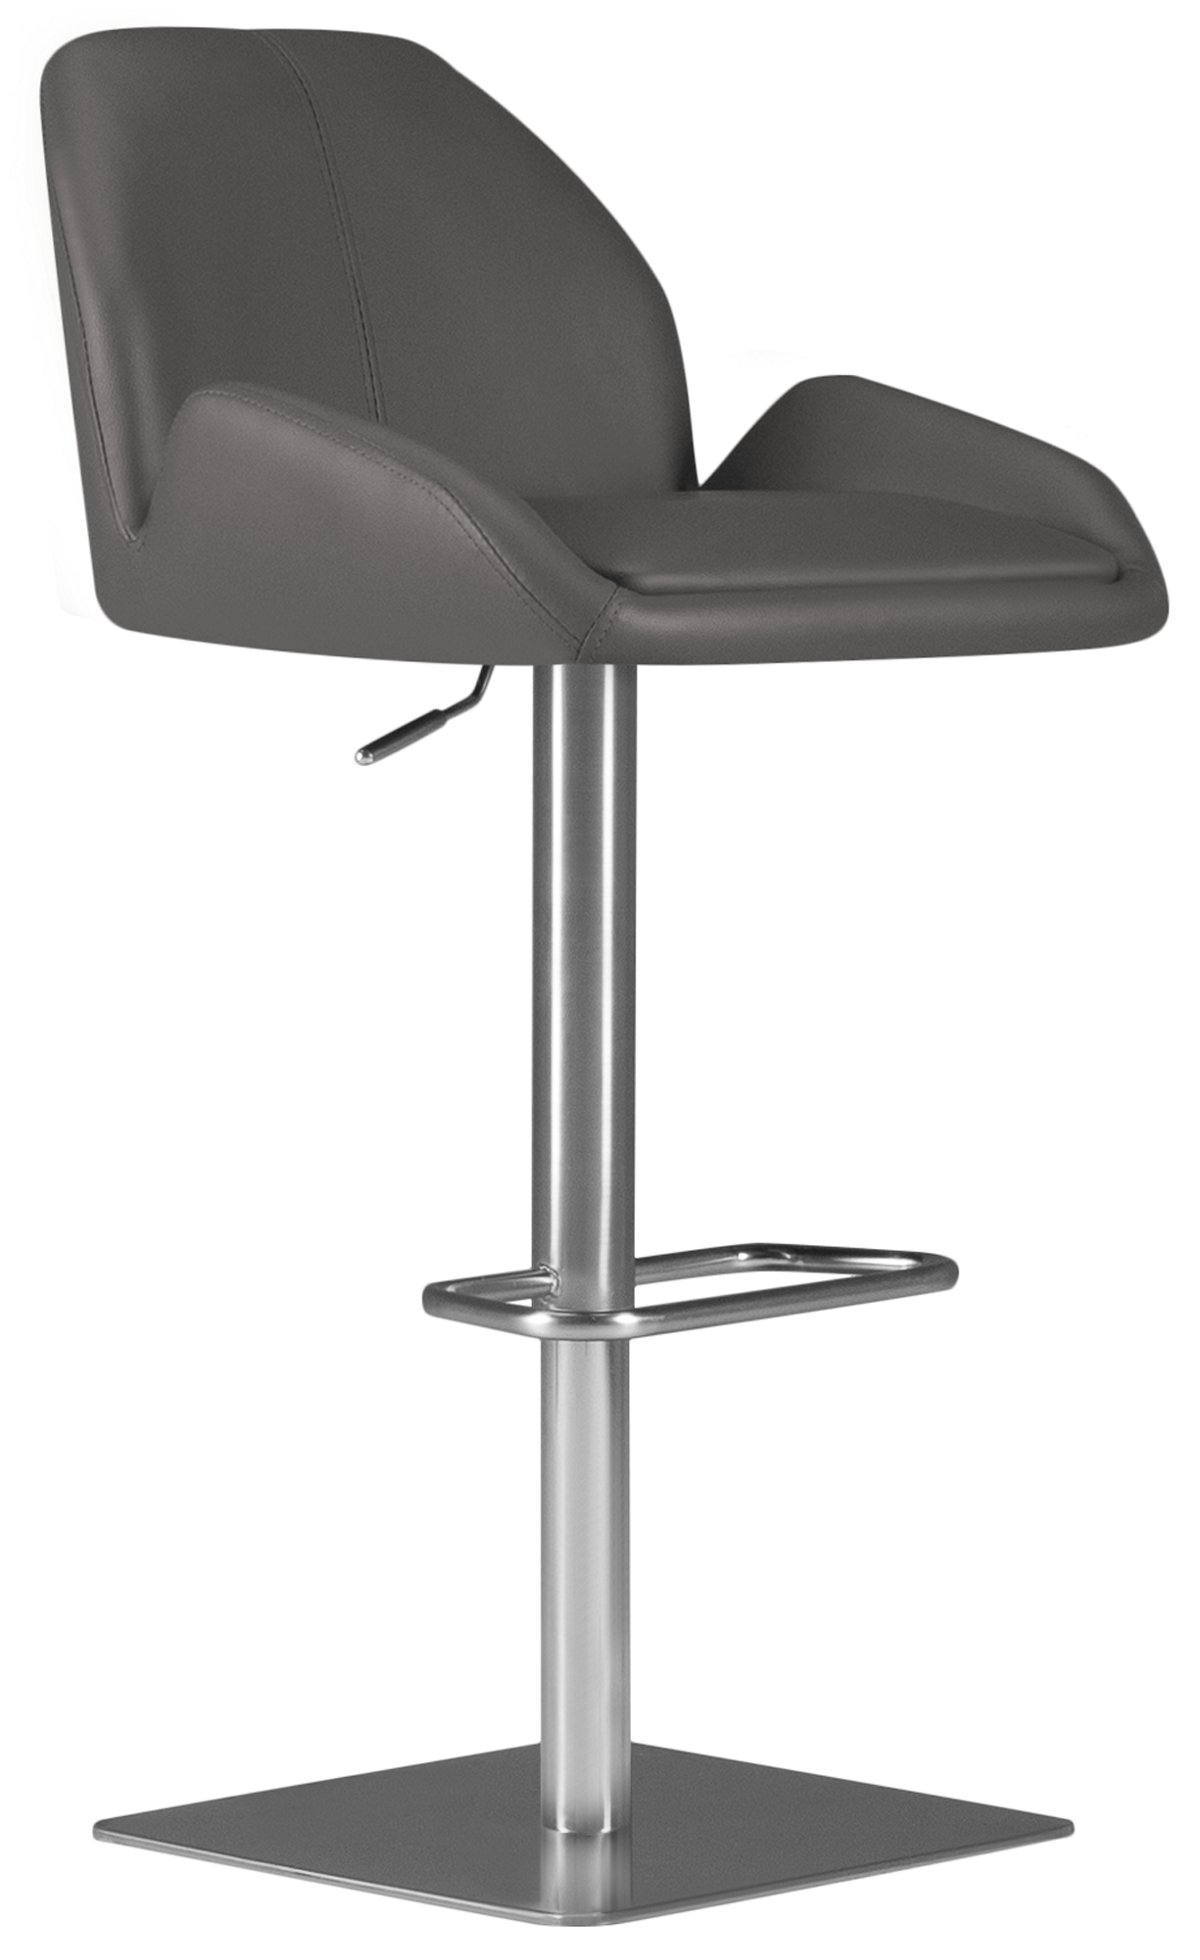 Fairfax Gray Upholstered Adjustable Stool